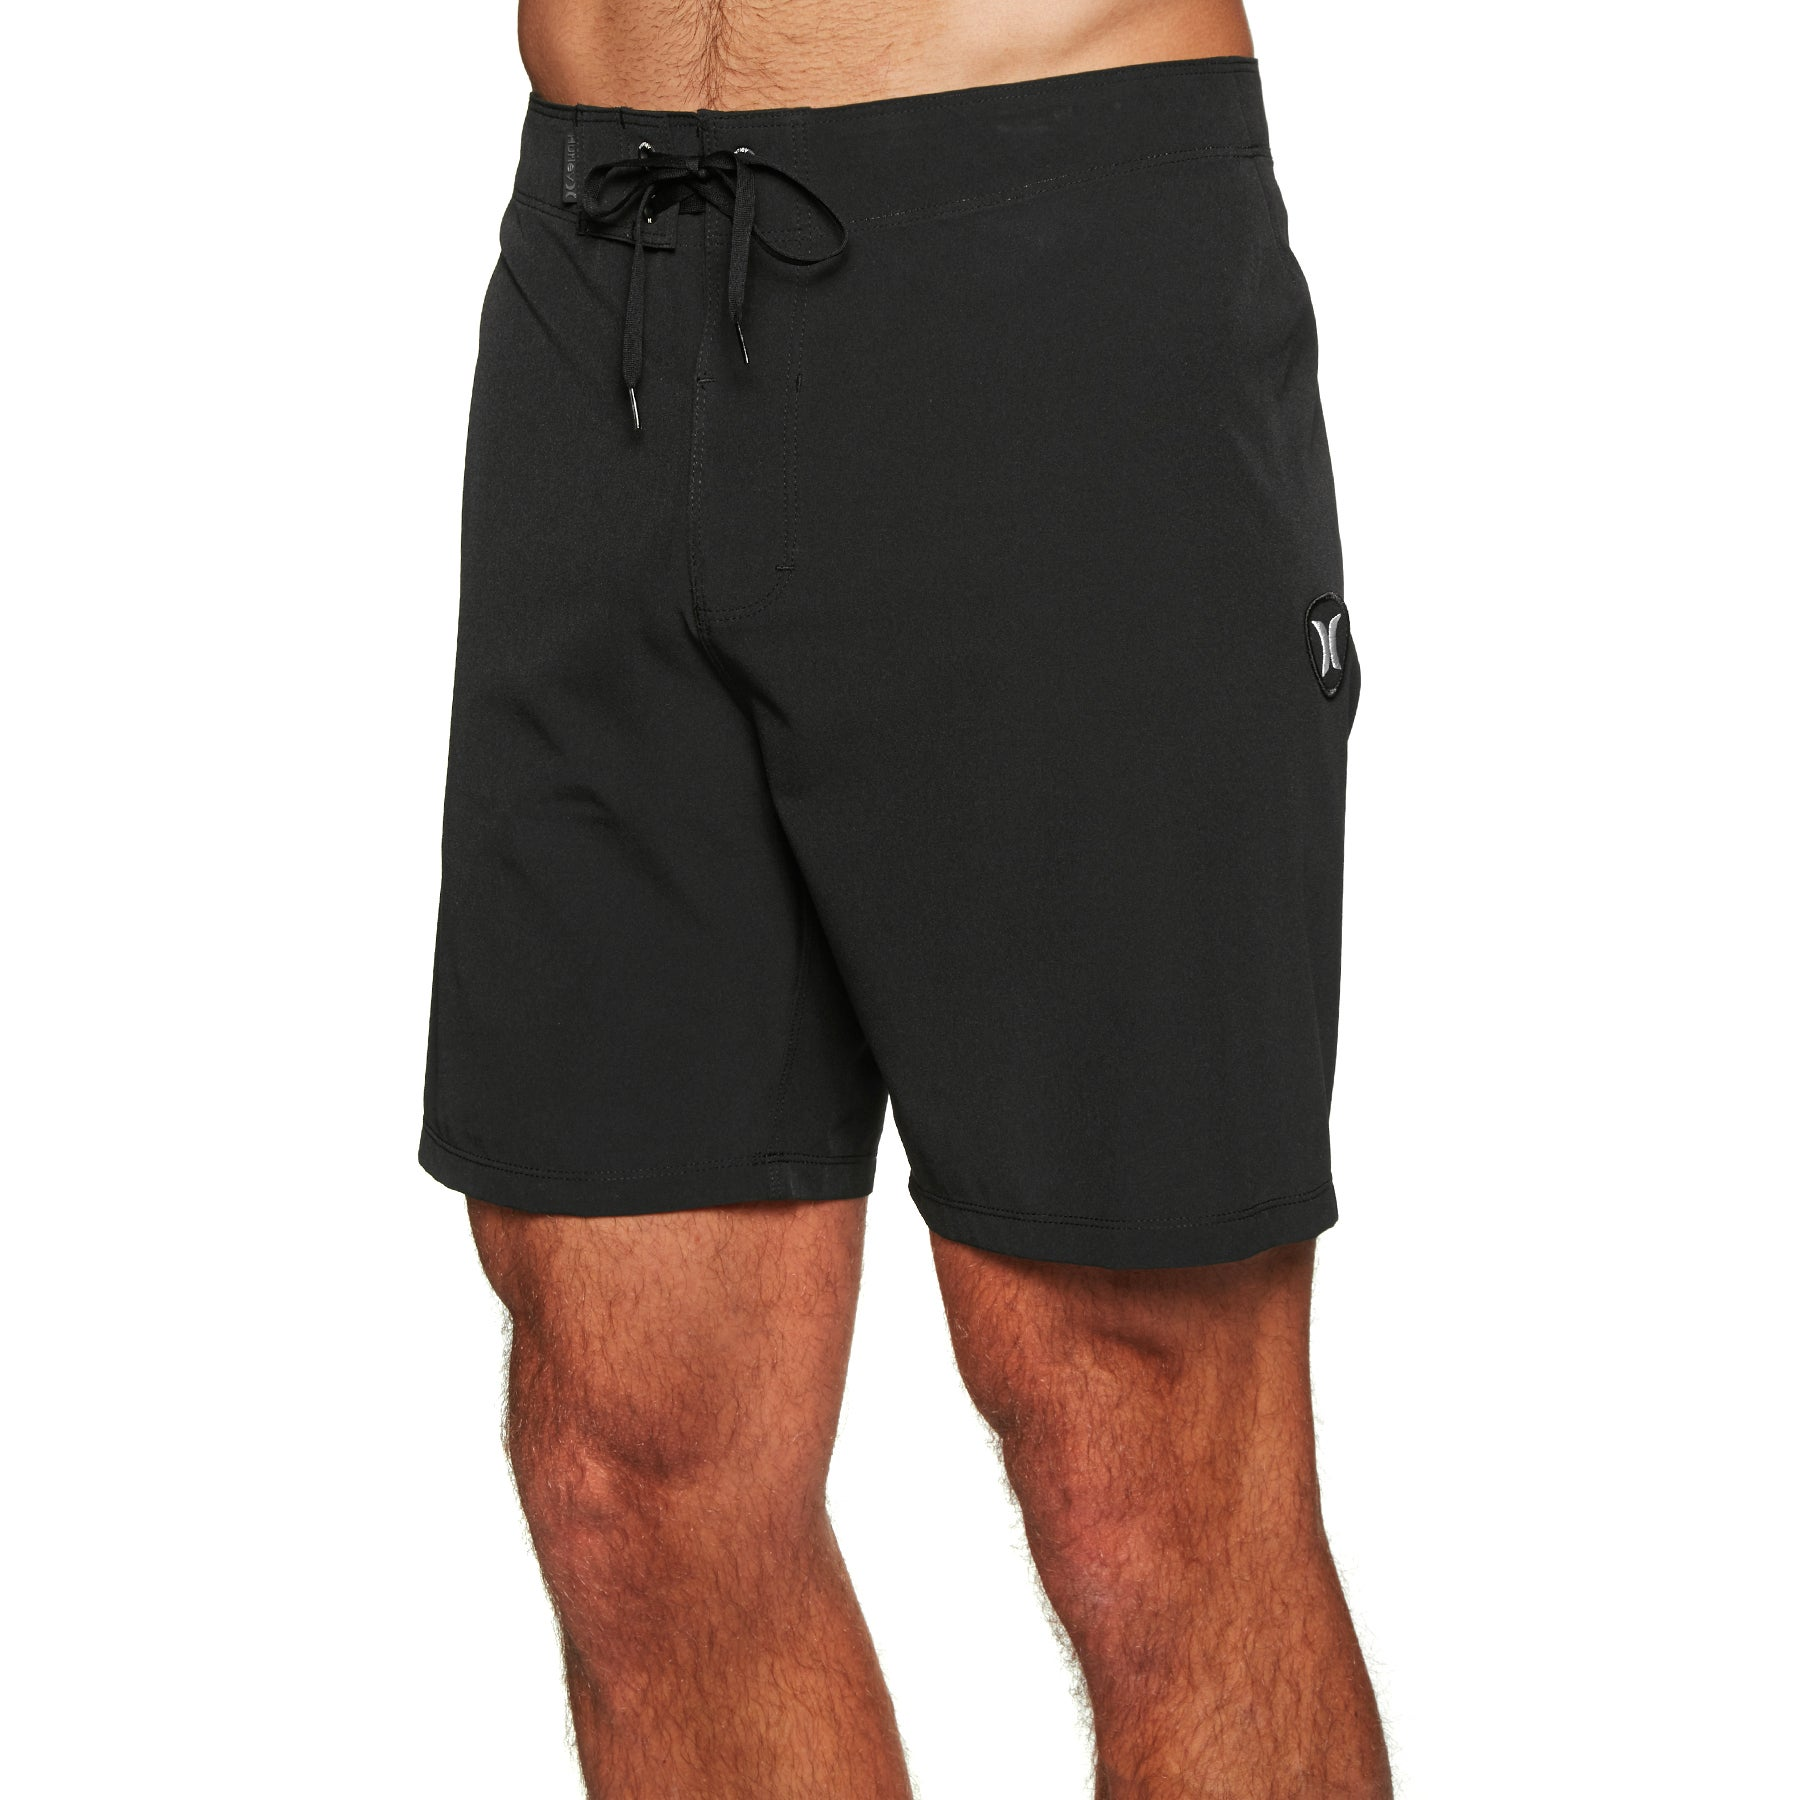 Boardshort Hurley Phantom One And Only 18in - Black